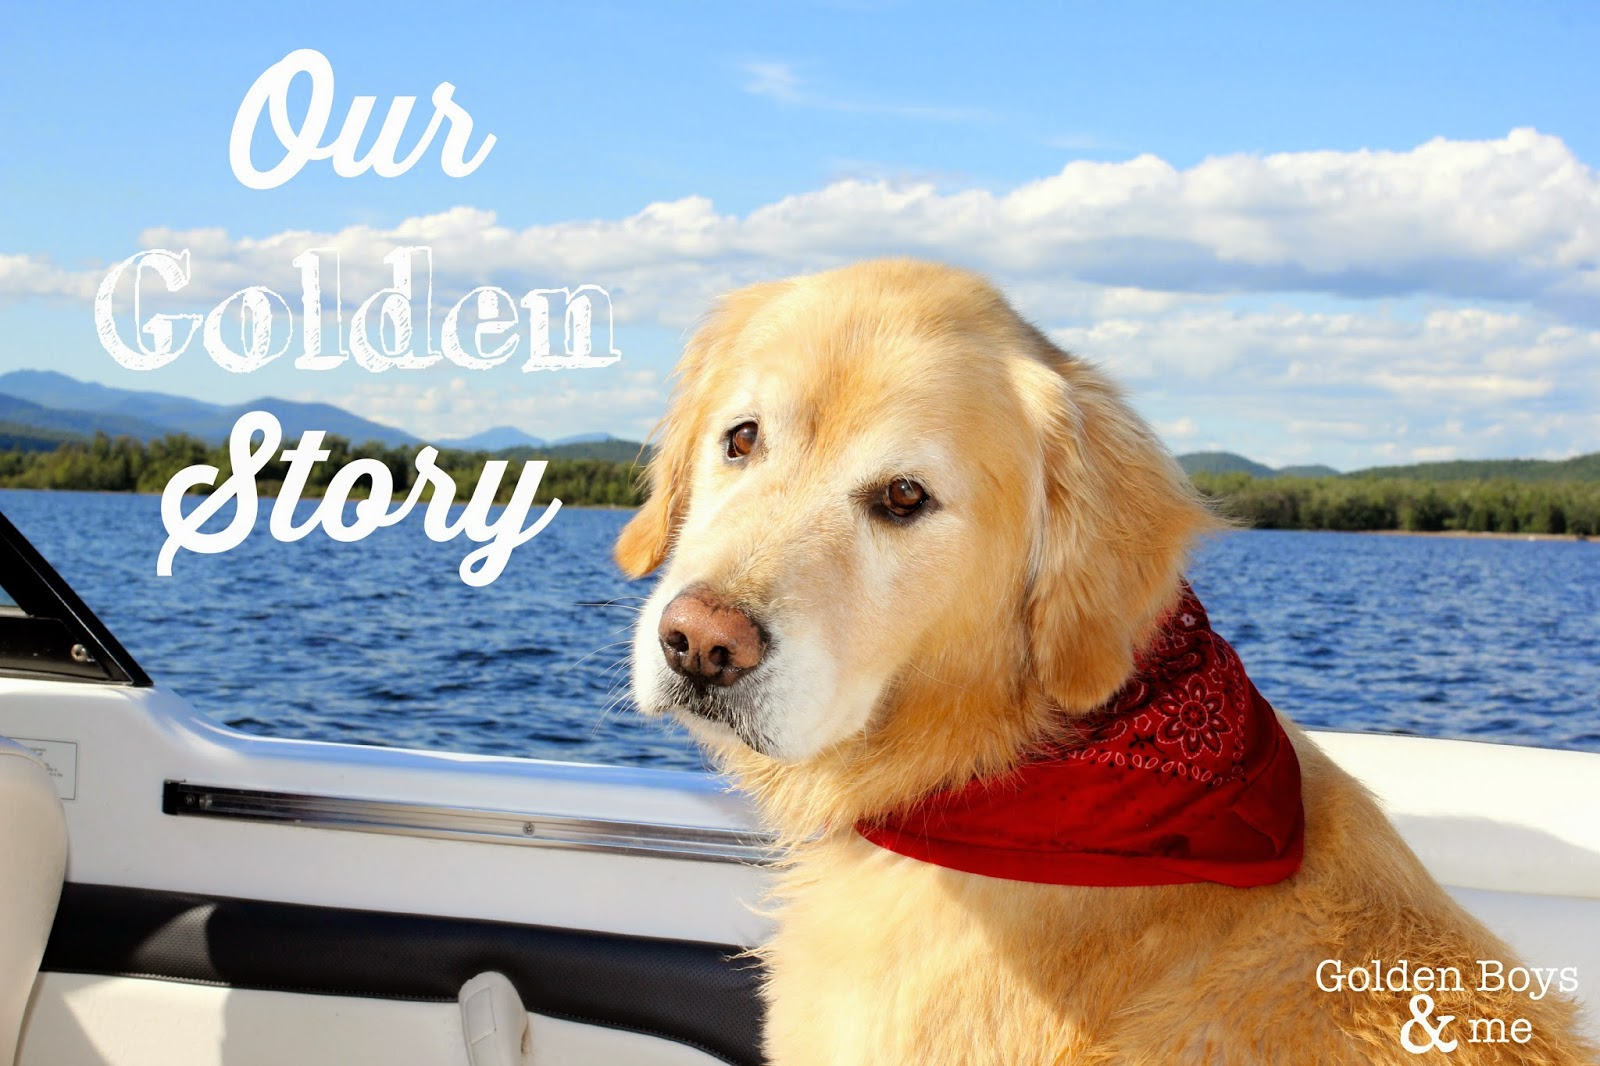 Story of a family that loves Golden Retrievers-www.goldenboysandme.com